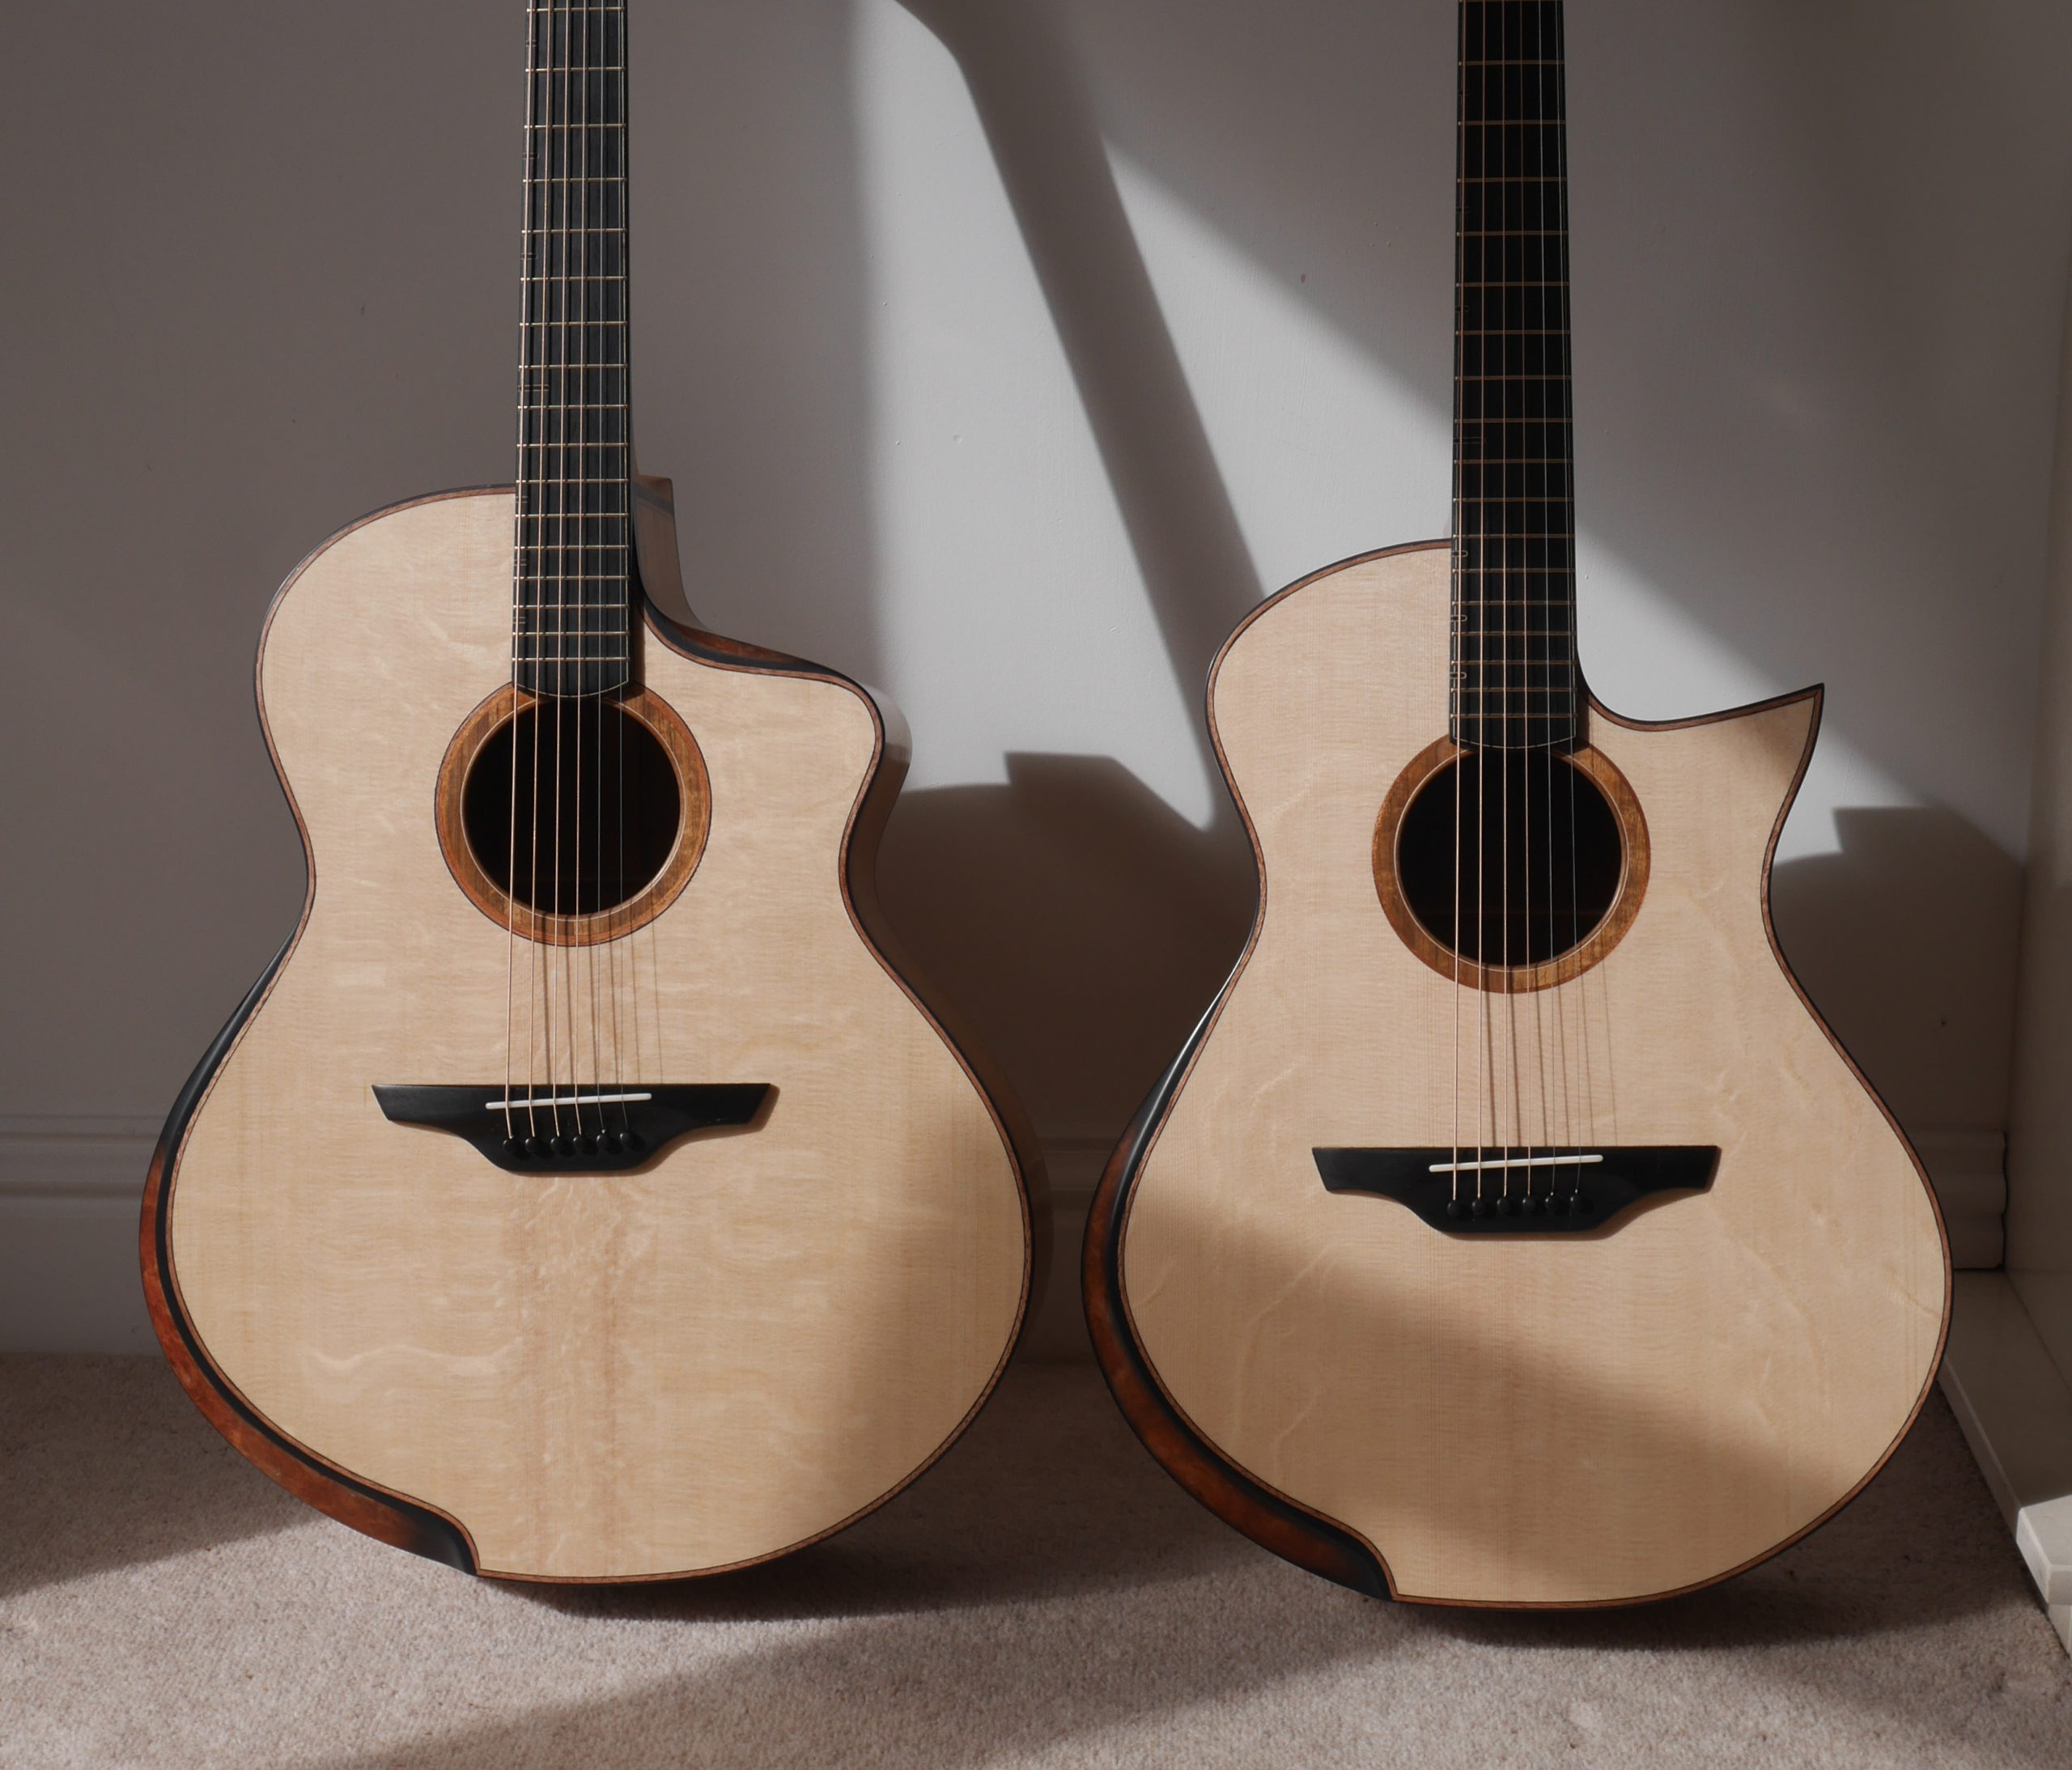 montgomery guitars, handmade, luthier, lutherie, jumbo, acoustic, grand concert